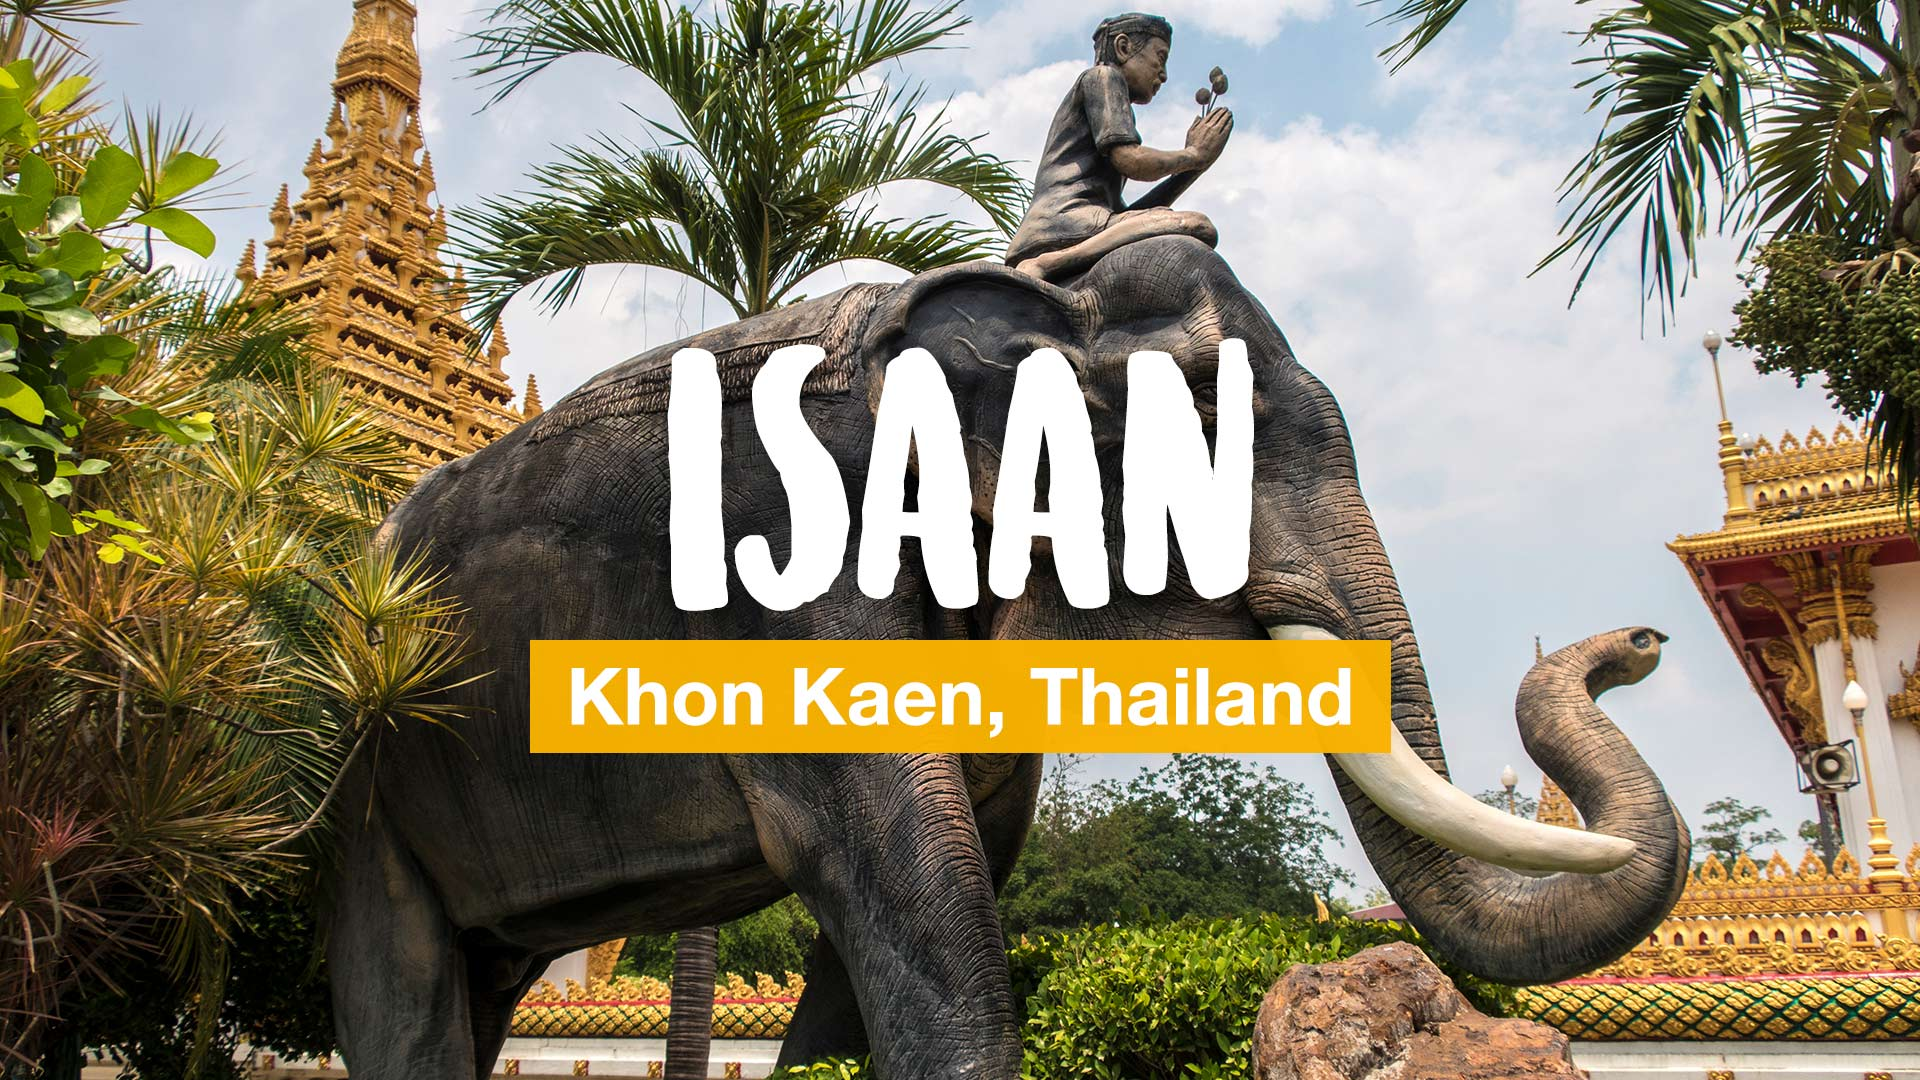 Isaan Video